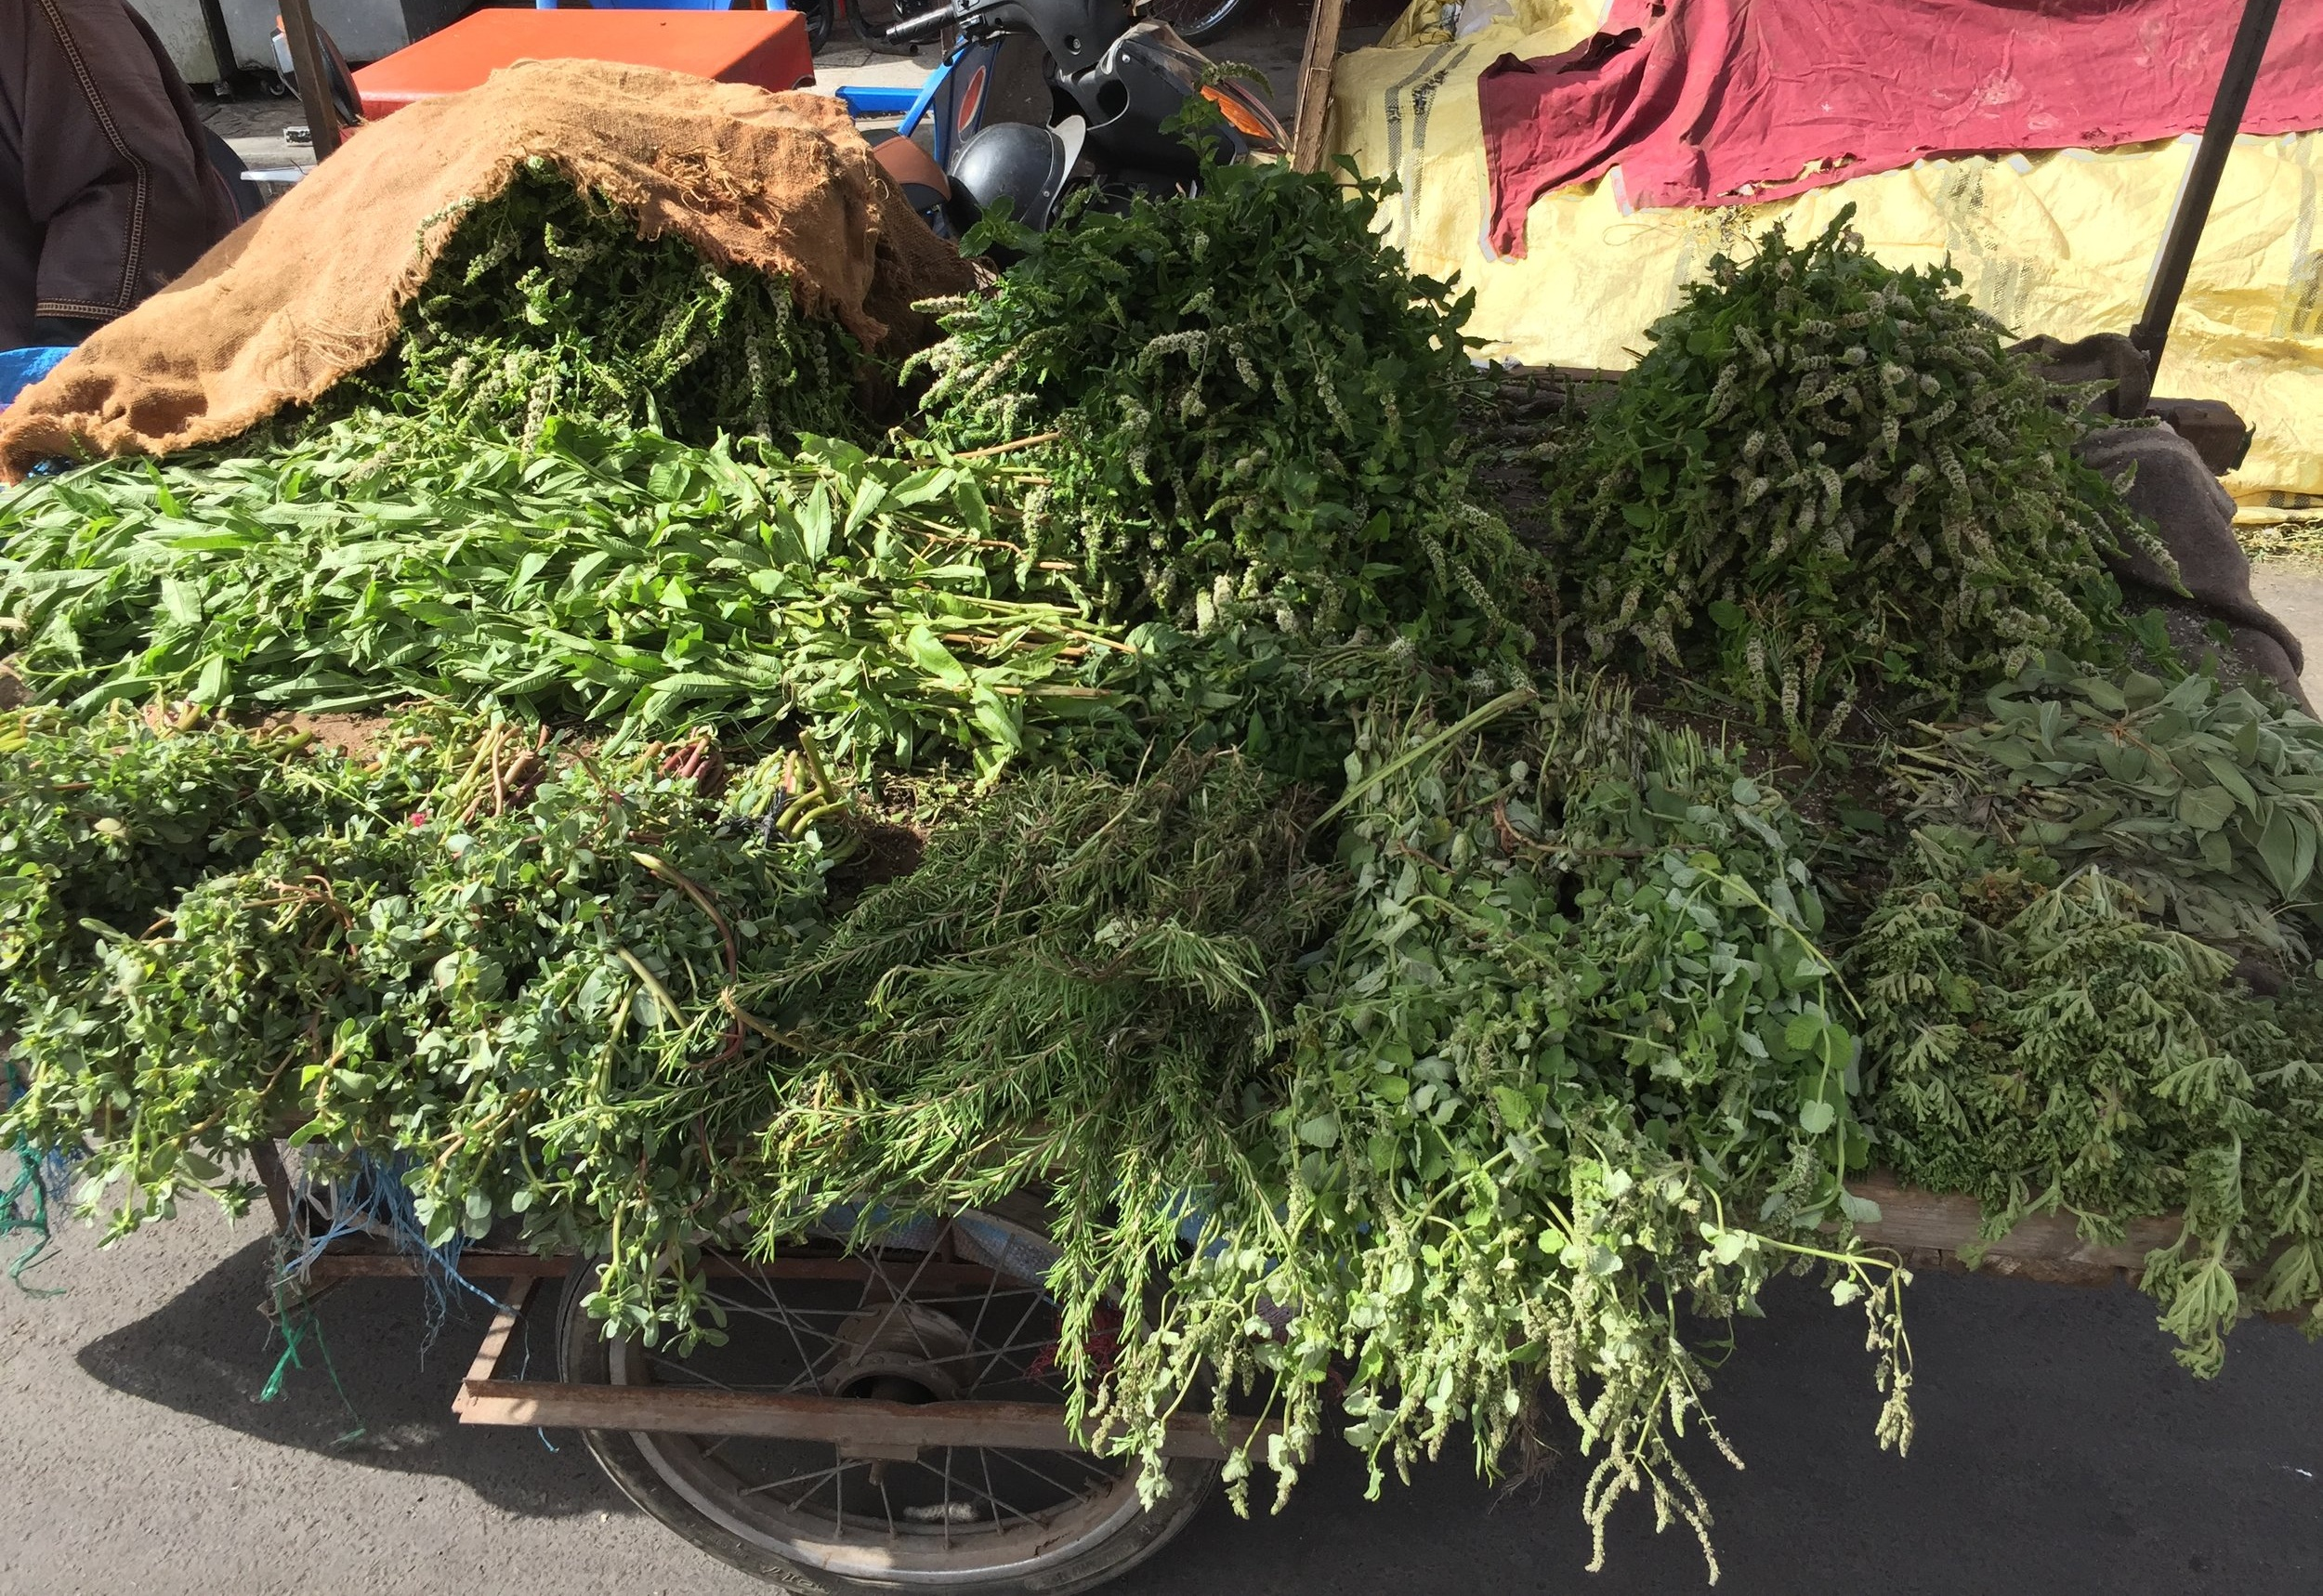 Trolly of fresh herbs in Marrakech.